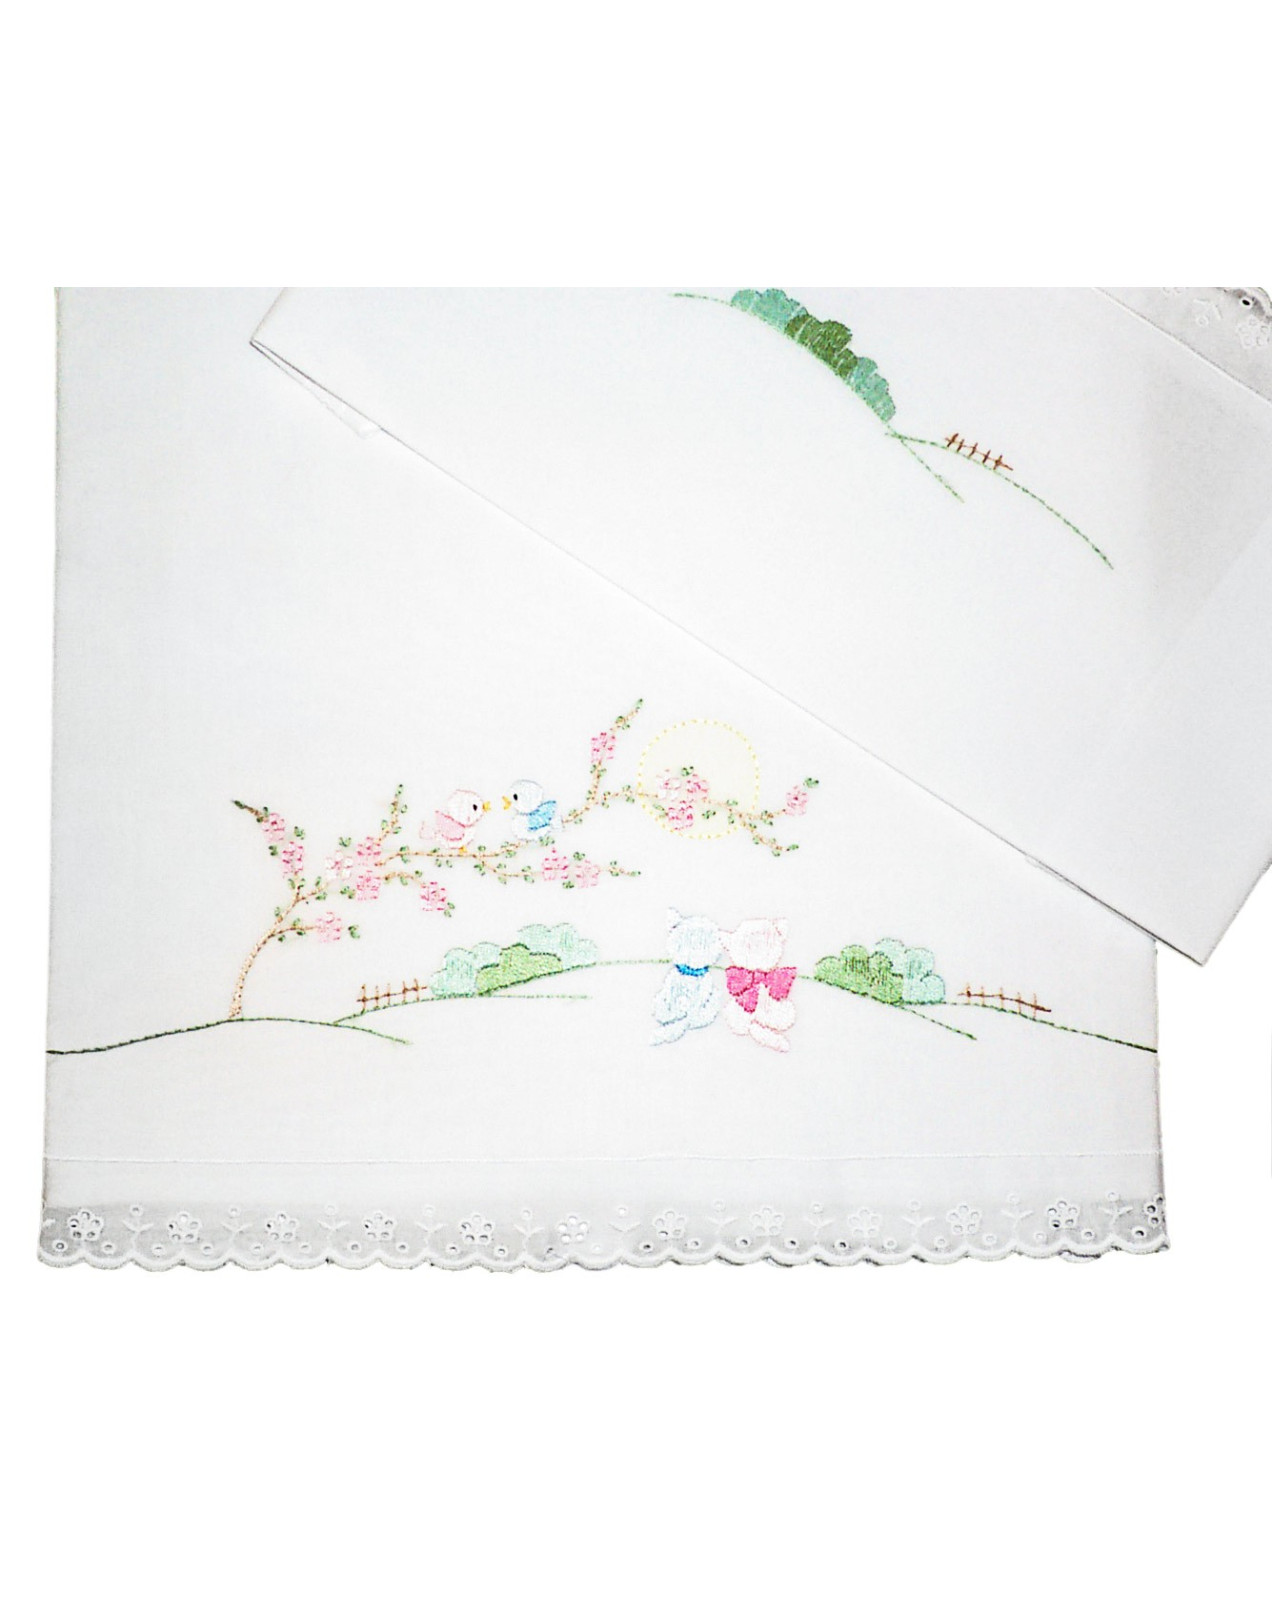 Baby crib and bed ,Sheet and blanket Sunrise hand embroideries